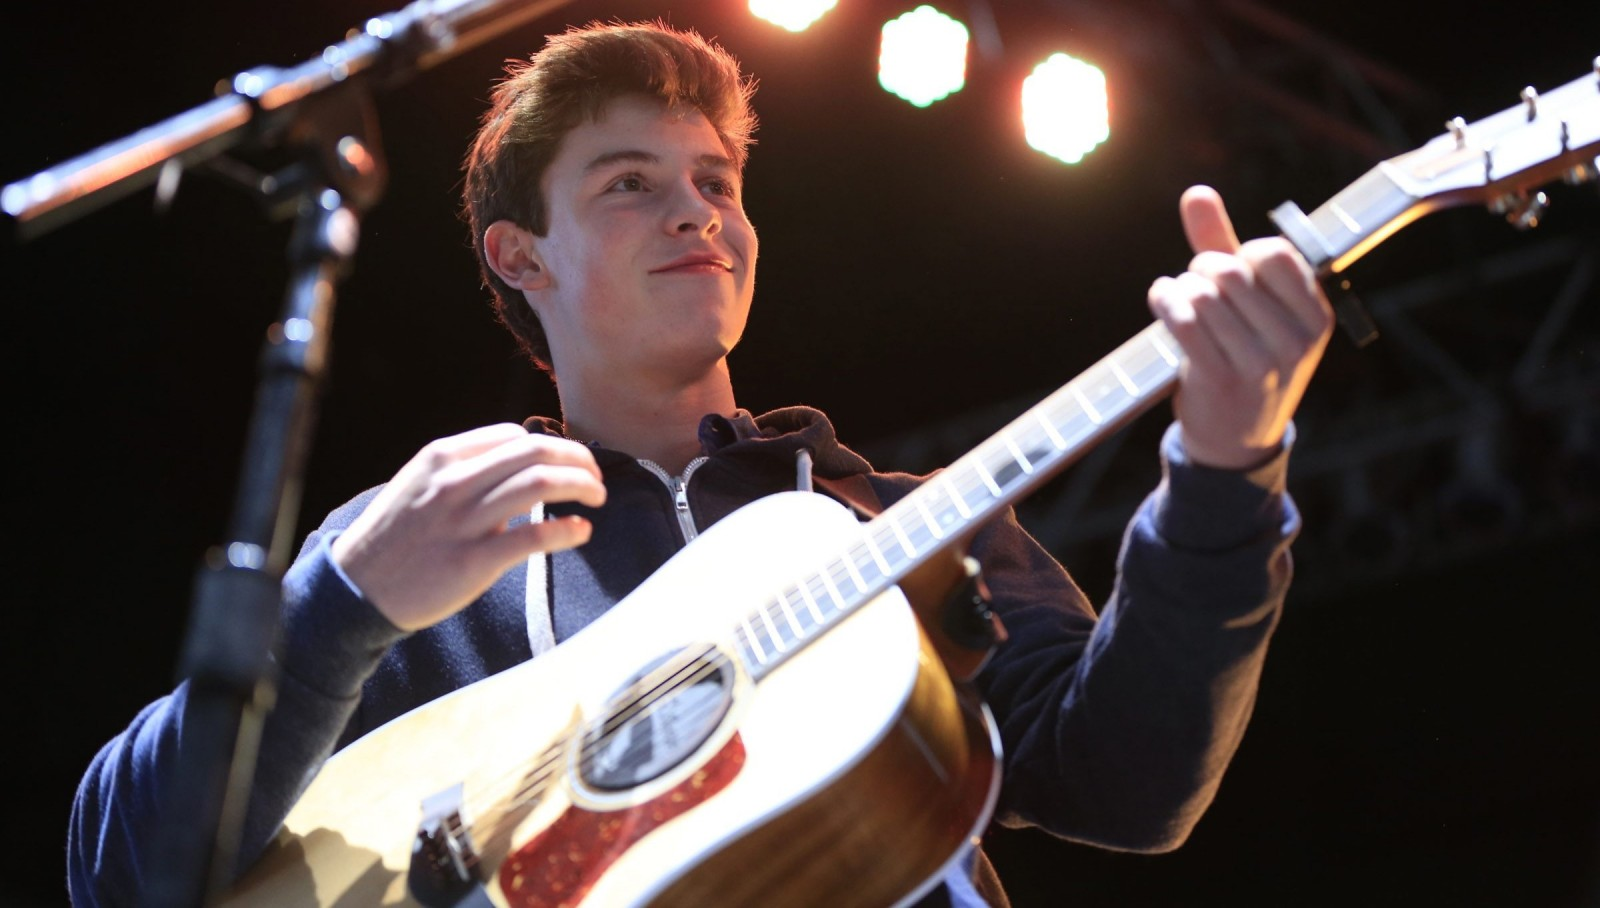 Shawn Mendes, seen performing at Darien Lake in 2015, returns to the area for a show at the Erie County Fair. (Harry Scull Jr/Buffalo News file photo)